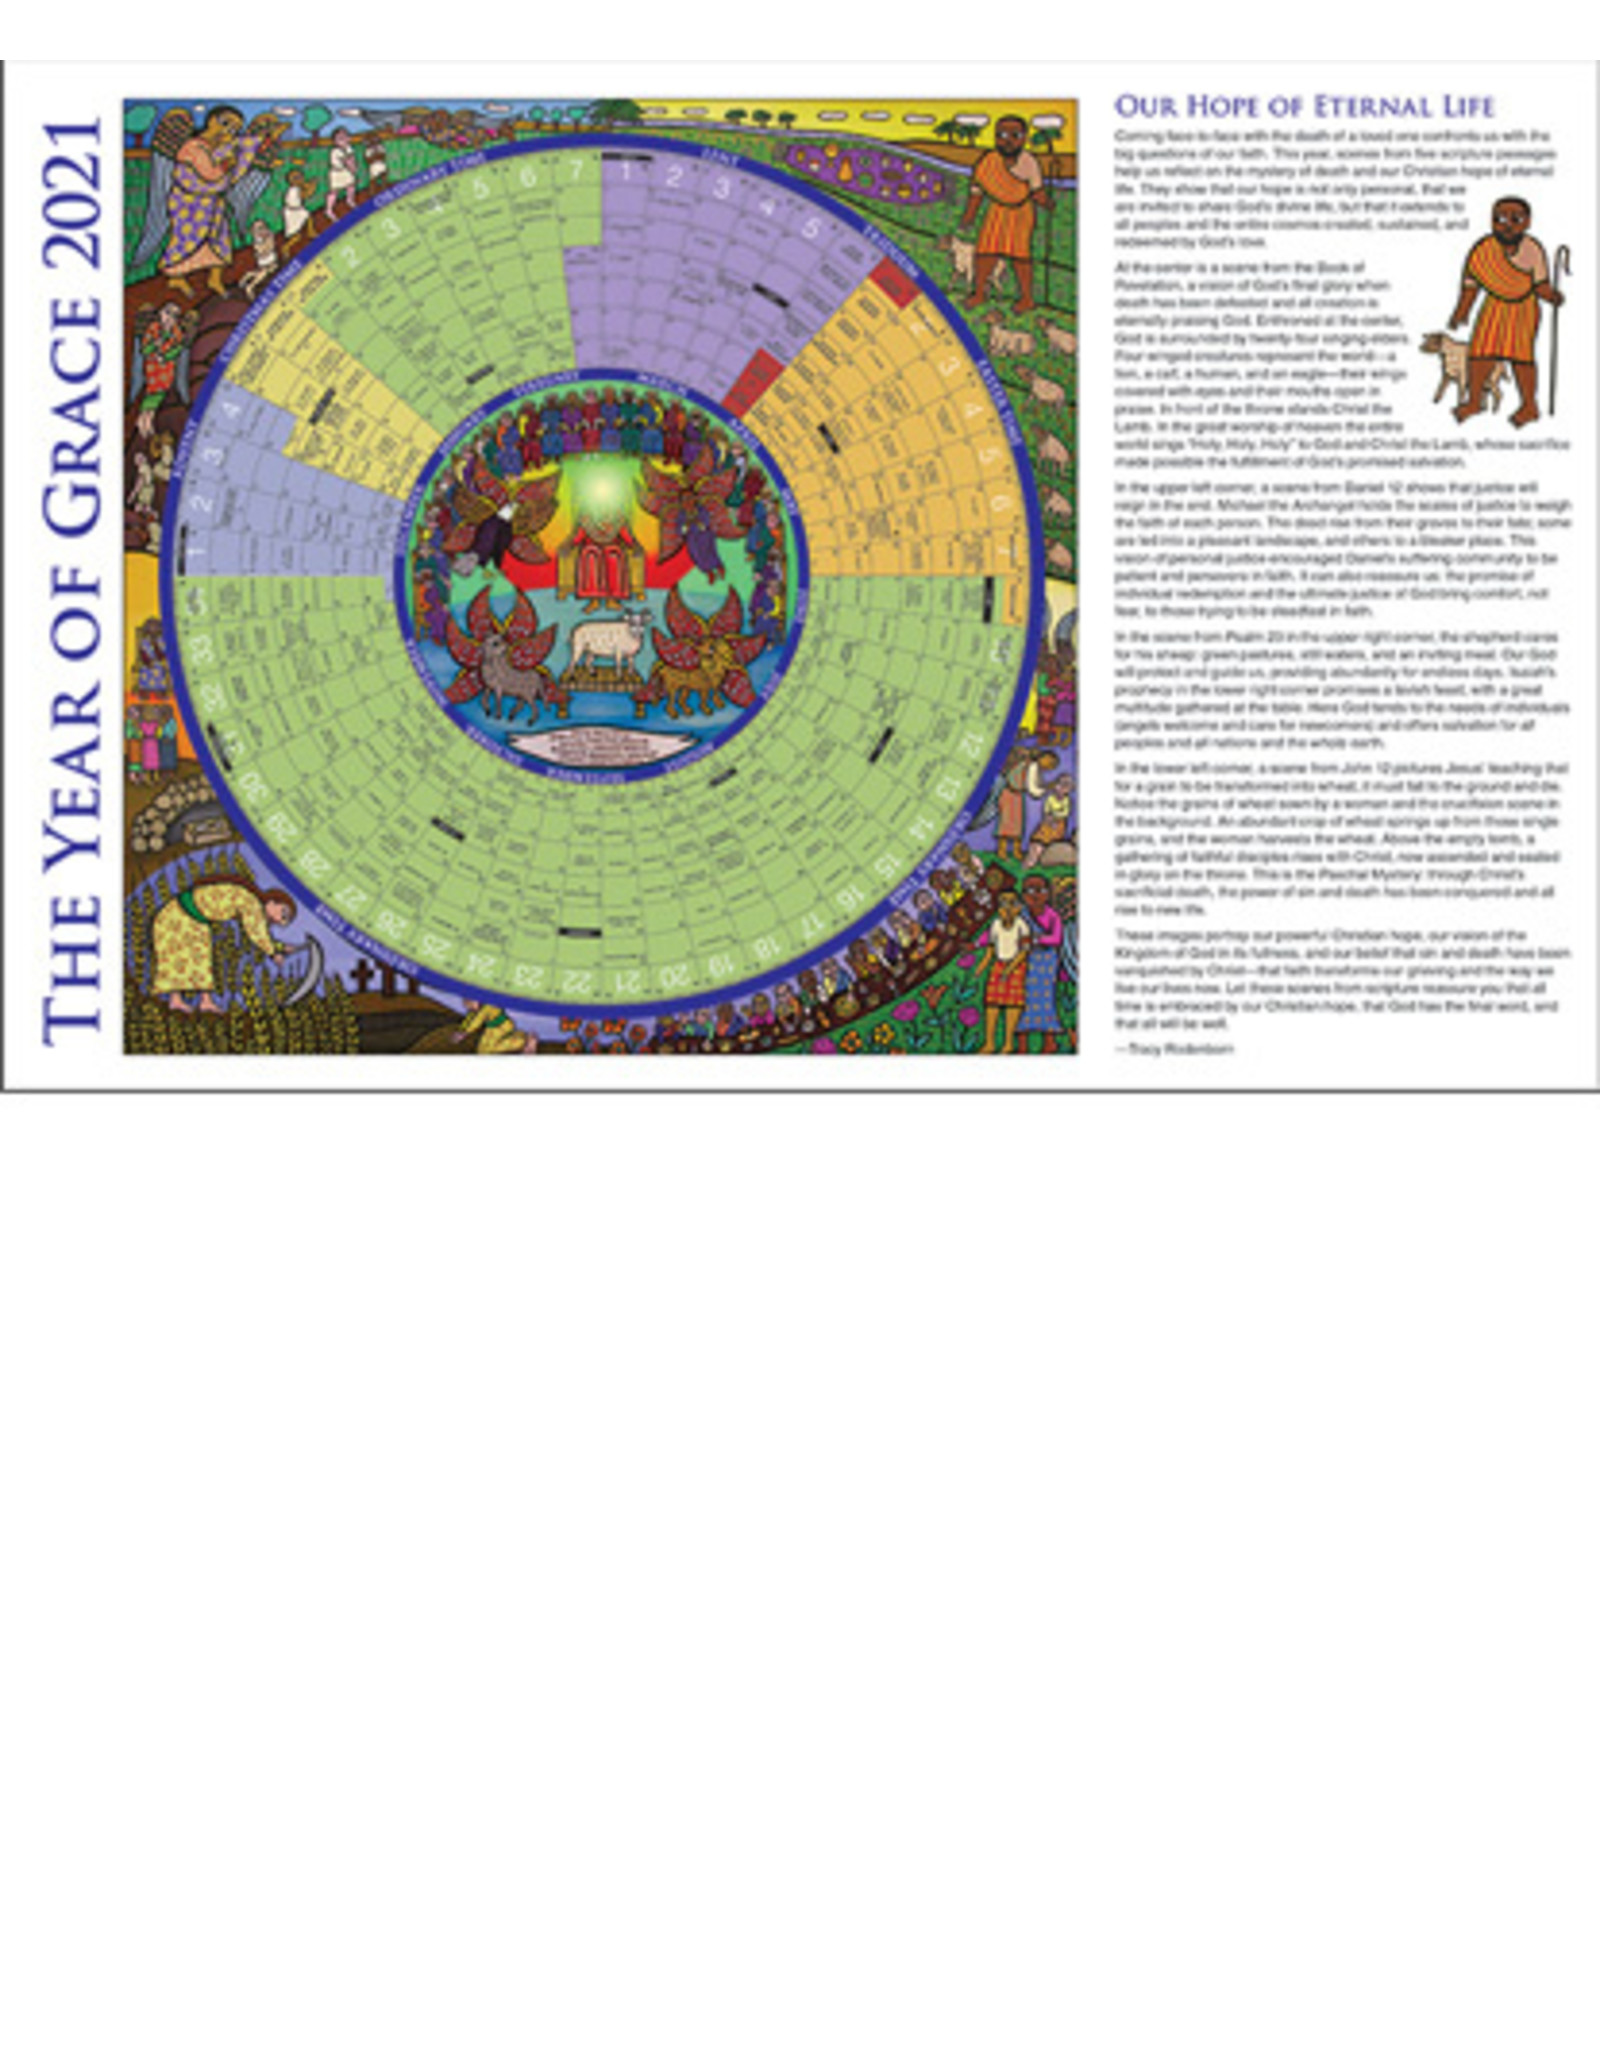 2021 Year of Grace Calendar - Laminated Placemat Size